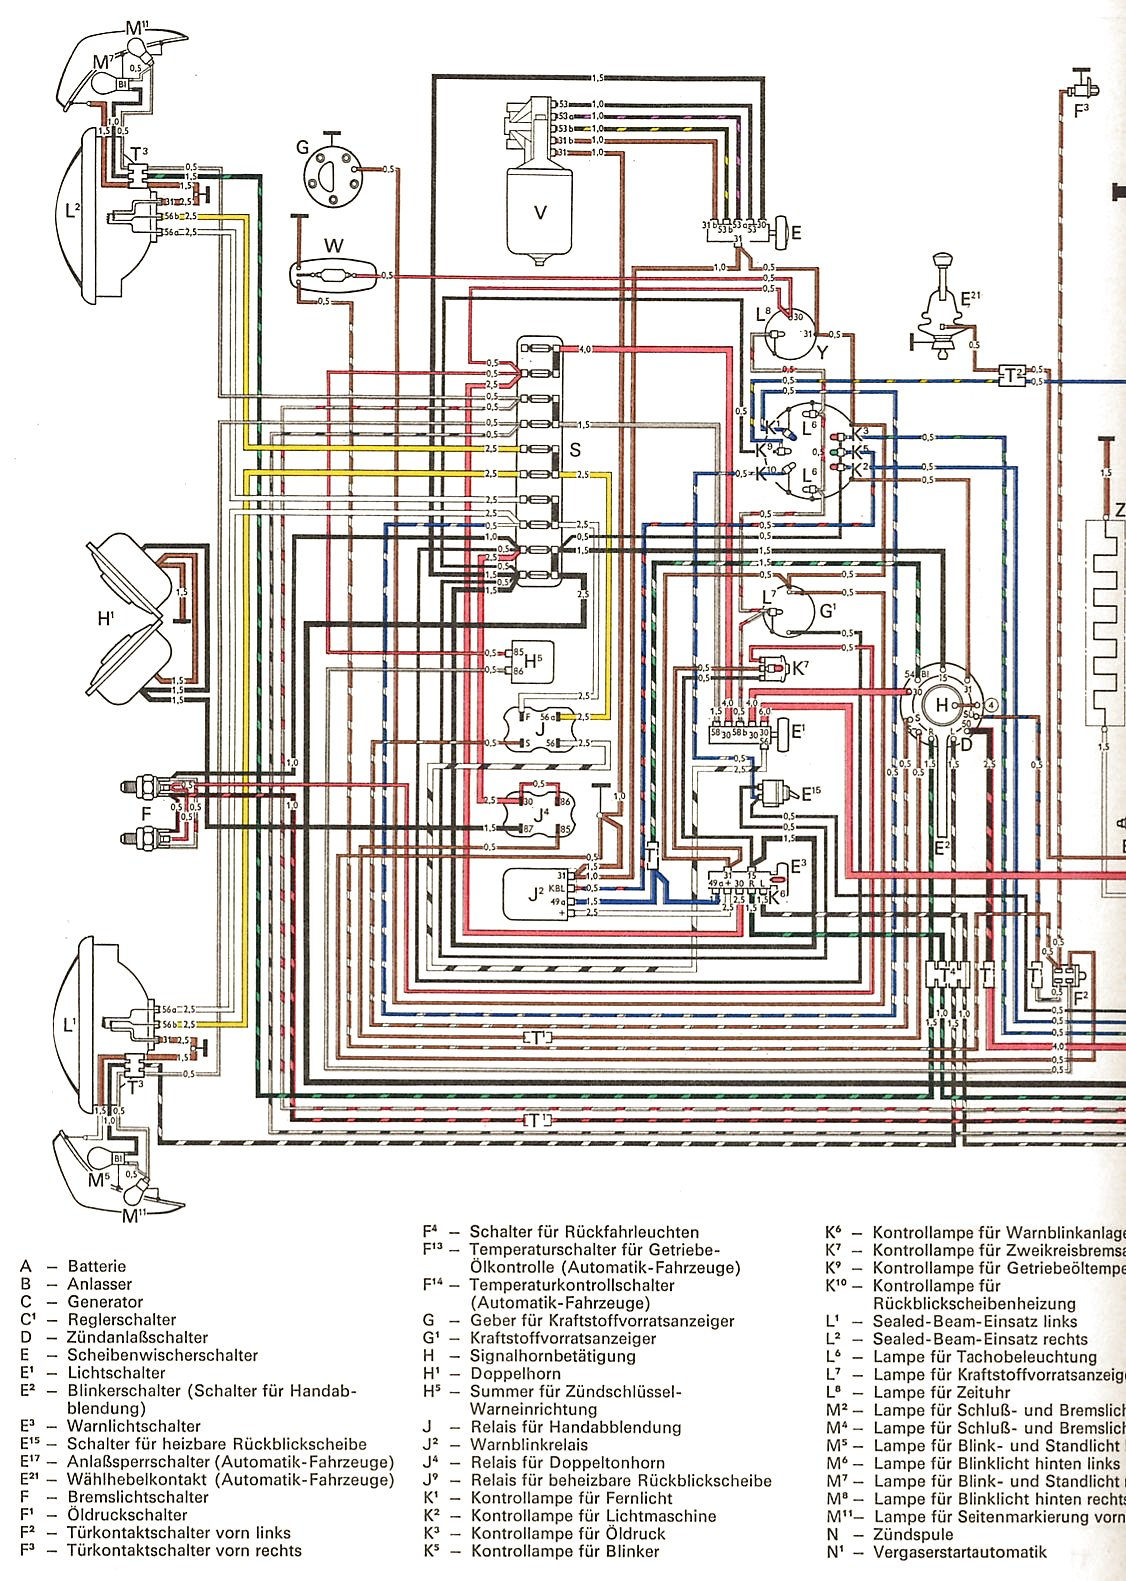 thesamba com ghia view topic colored wiring diagram odes wiring diagram image may have been reduced in size click image to view fullscreen